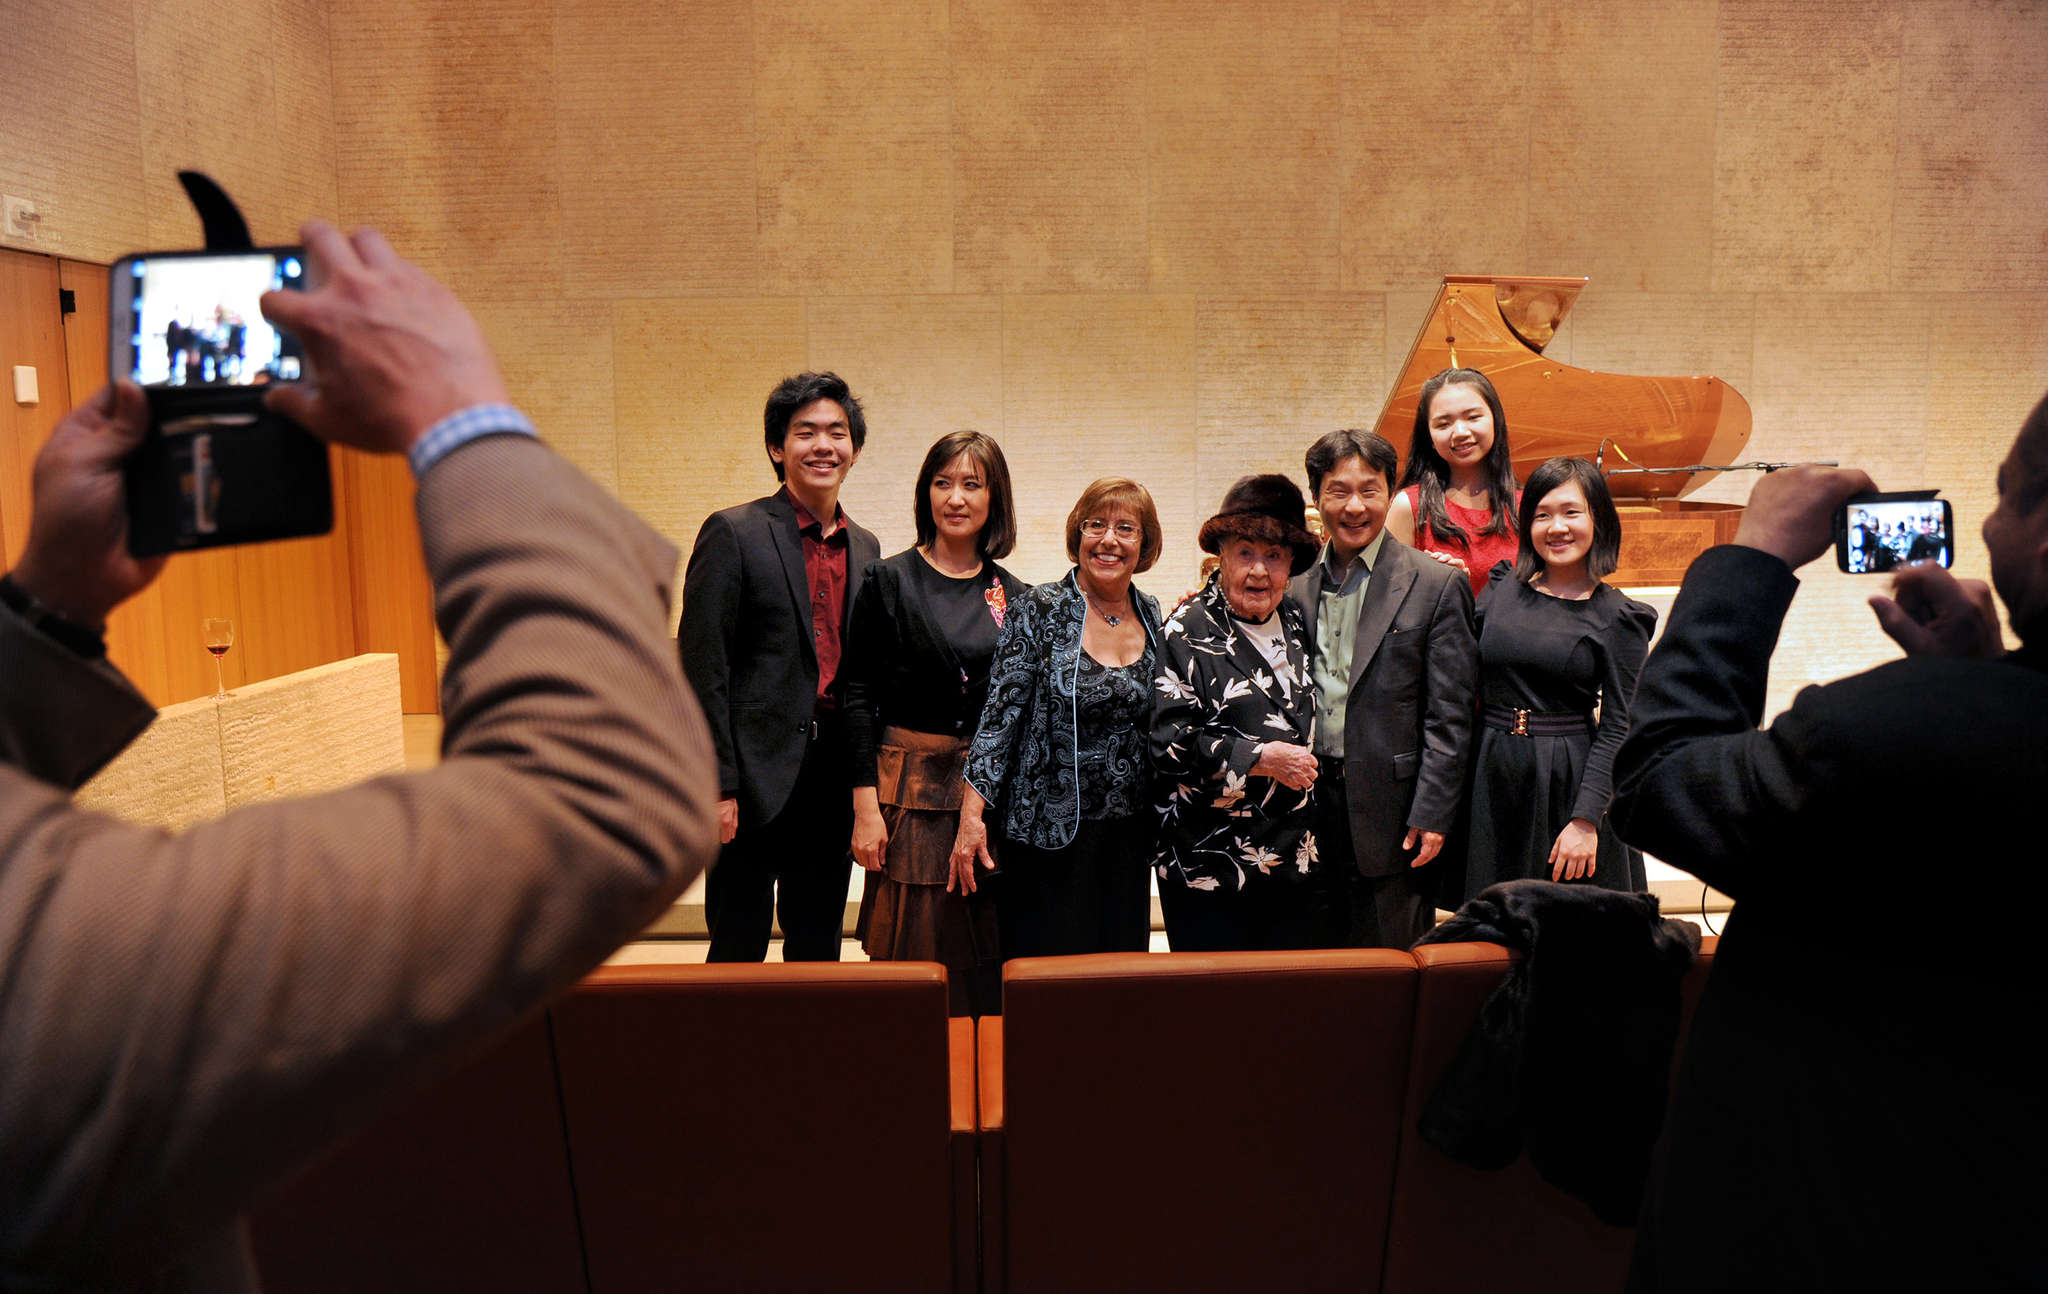 Piano instructor Eleanor Sokoloff (center) with some of the eight pianists, all former students, after their recital in her honor.